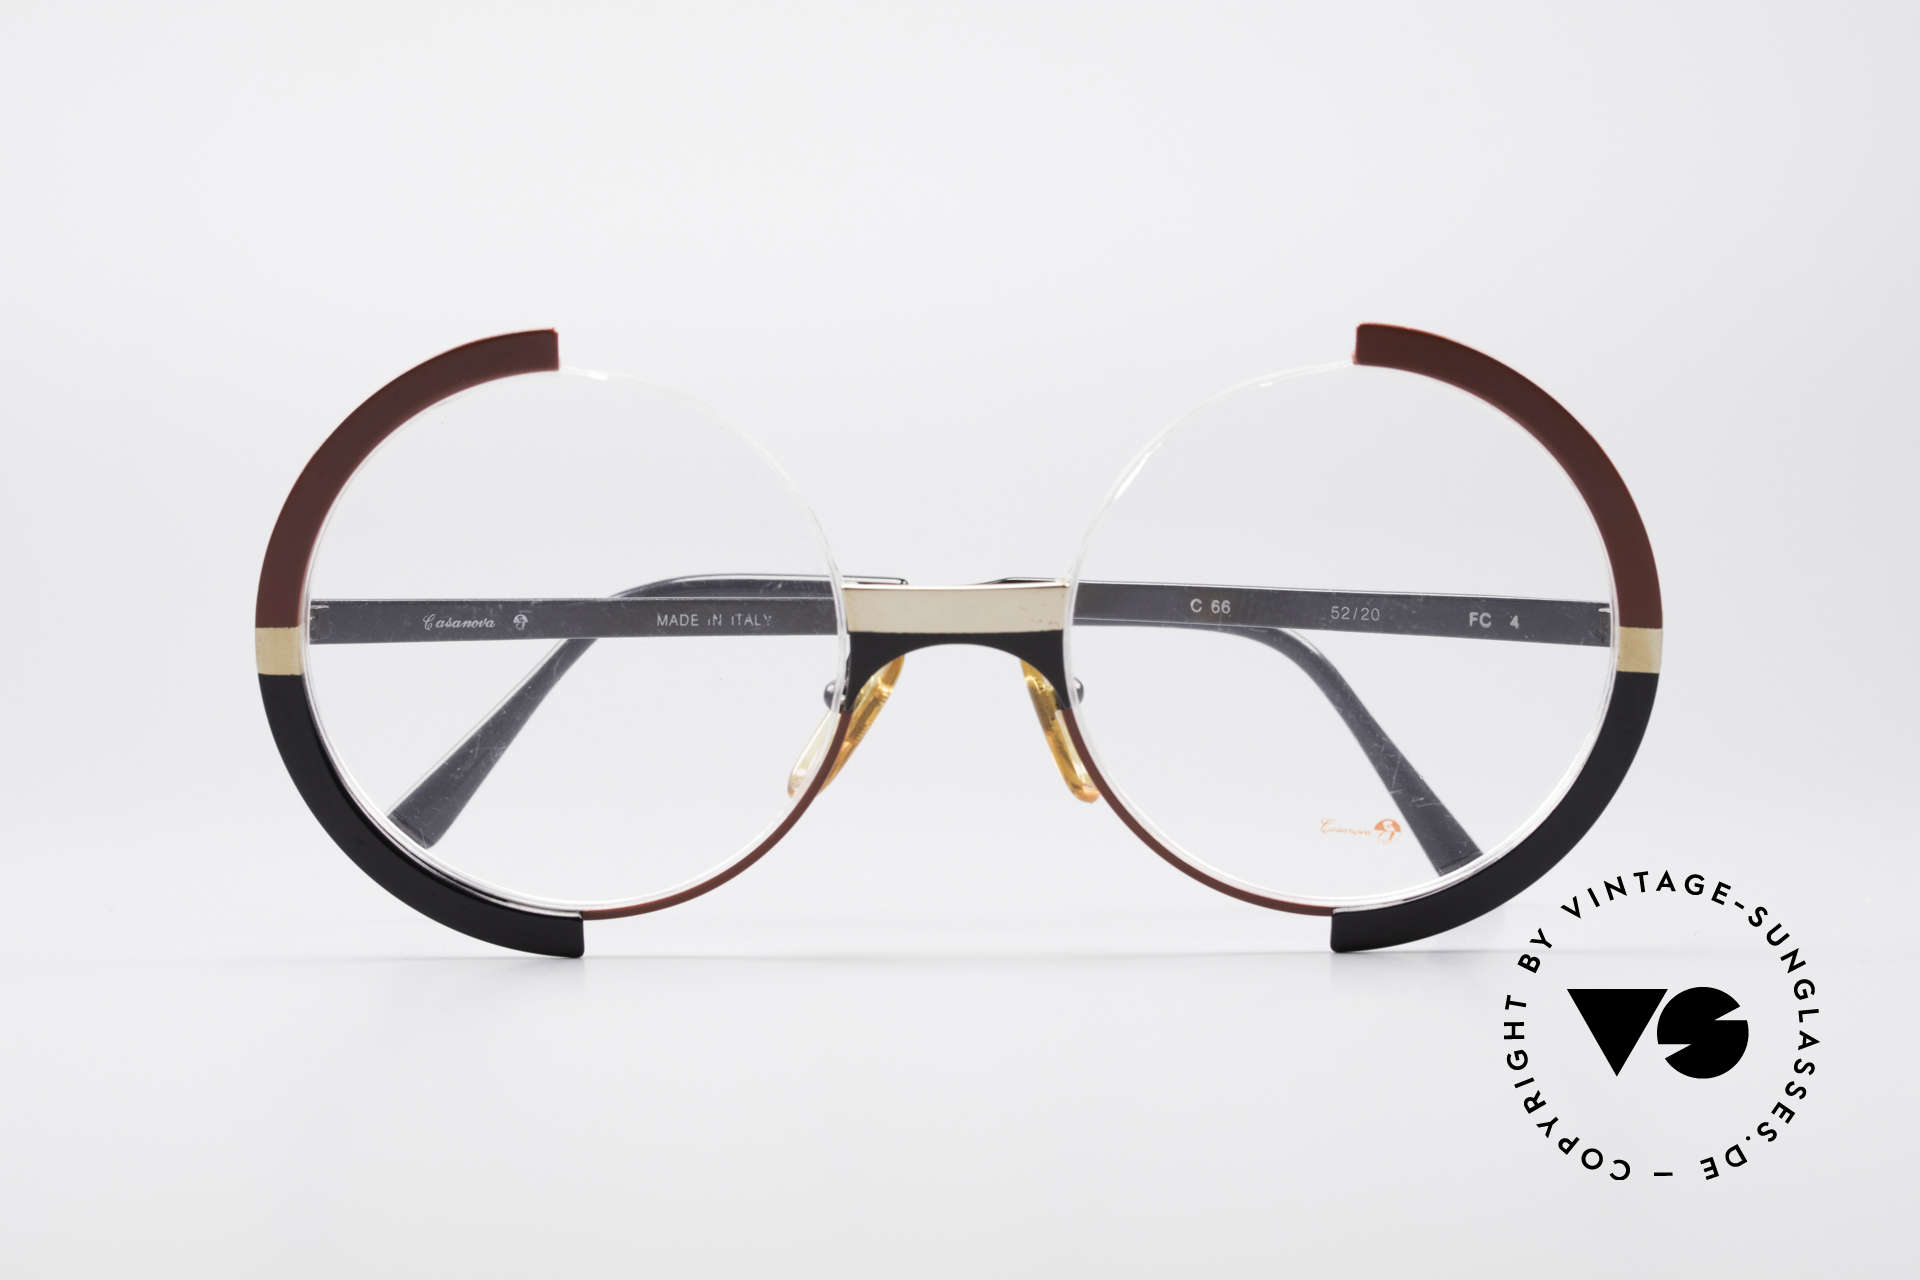 Casanova FC4 Artful 80's Eyeglasses, NO RETRO EYEGLASSES, but a true old ORIGINAL!, Made for Women